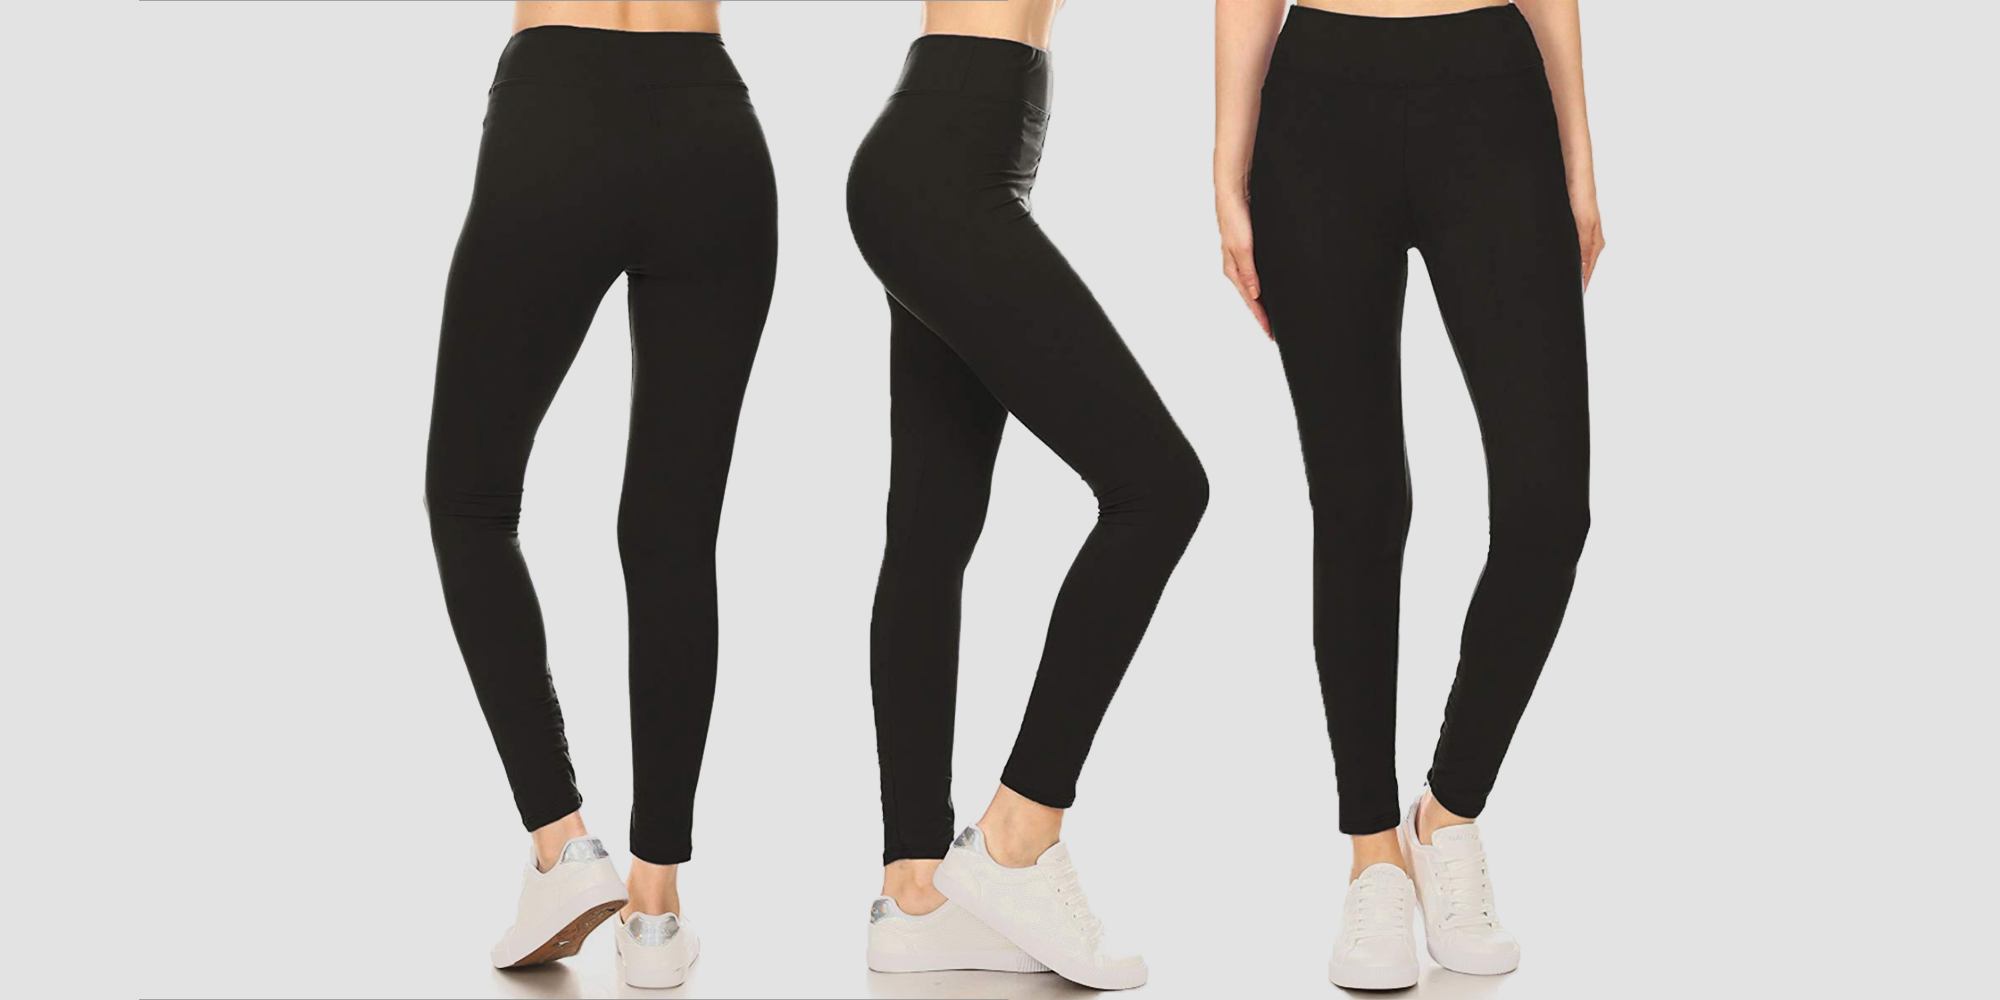 Why Amazon Reviewers Love High Waisted Leggings By Leggings Depot